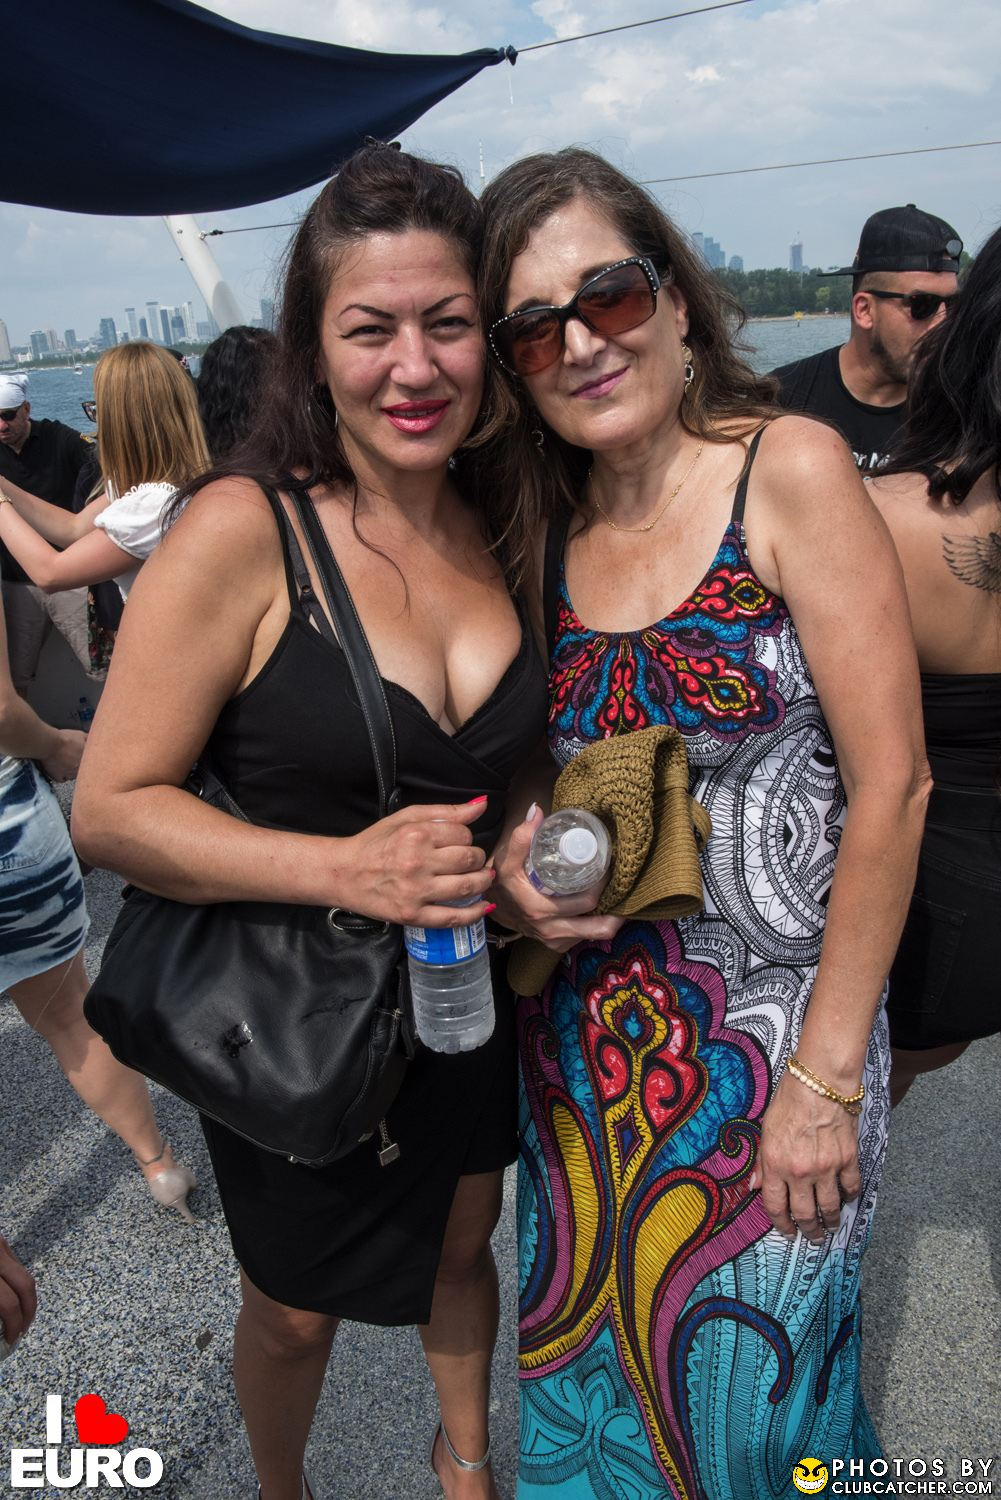 Empress Of Canada party venue photo 20 - August 22nd, 2021